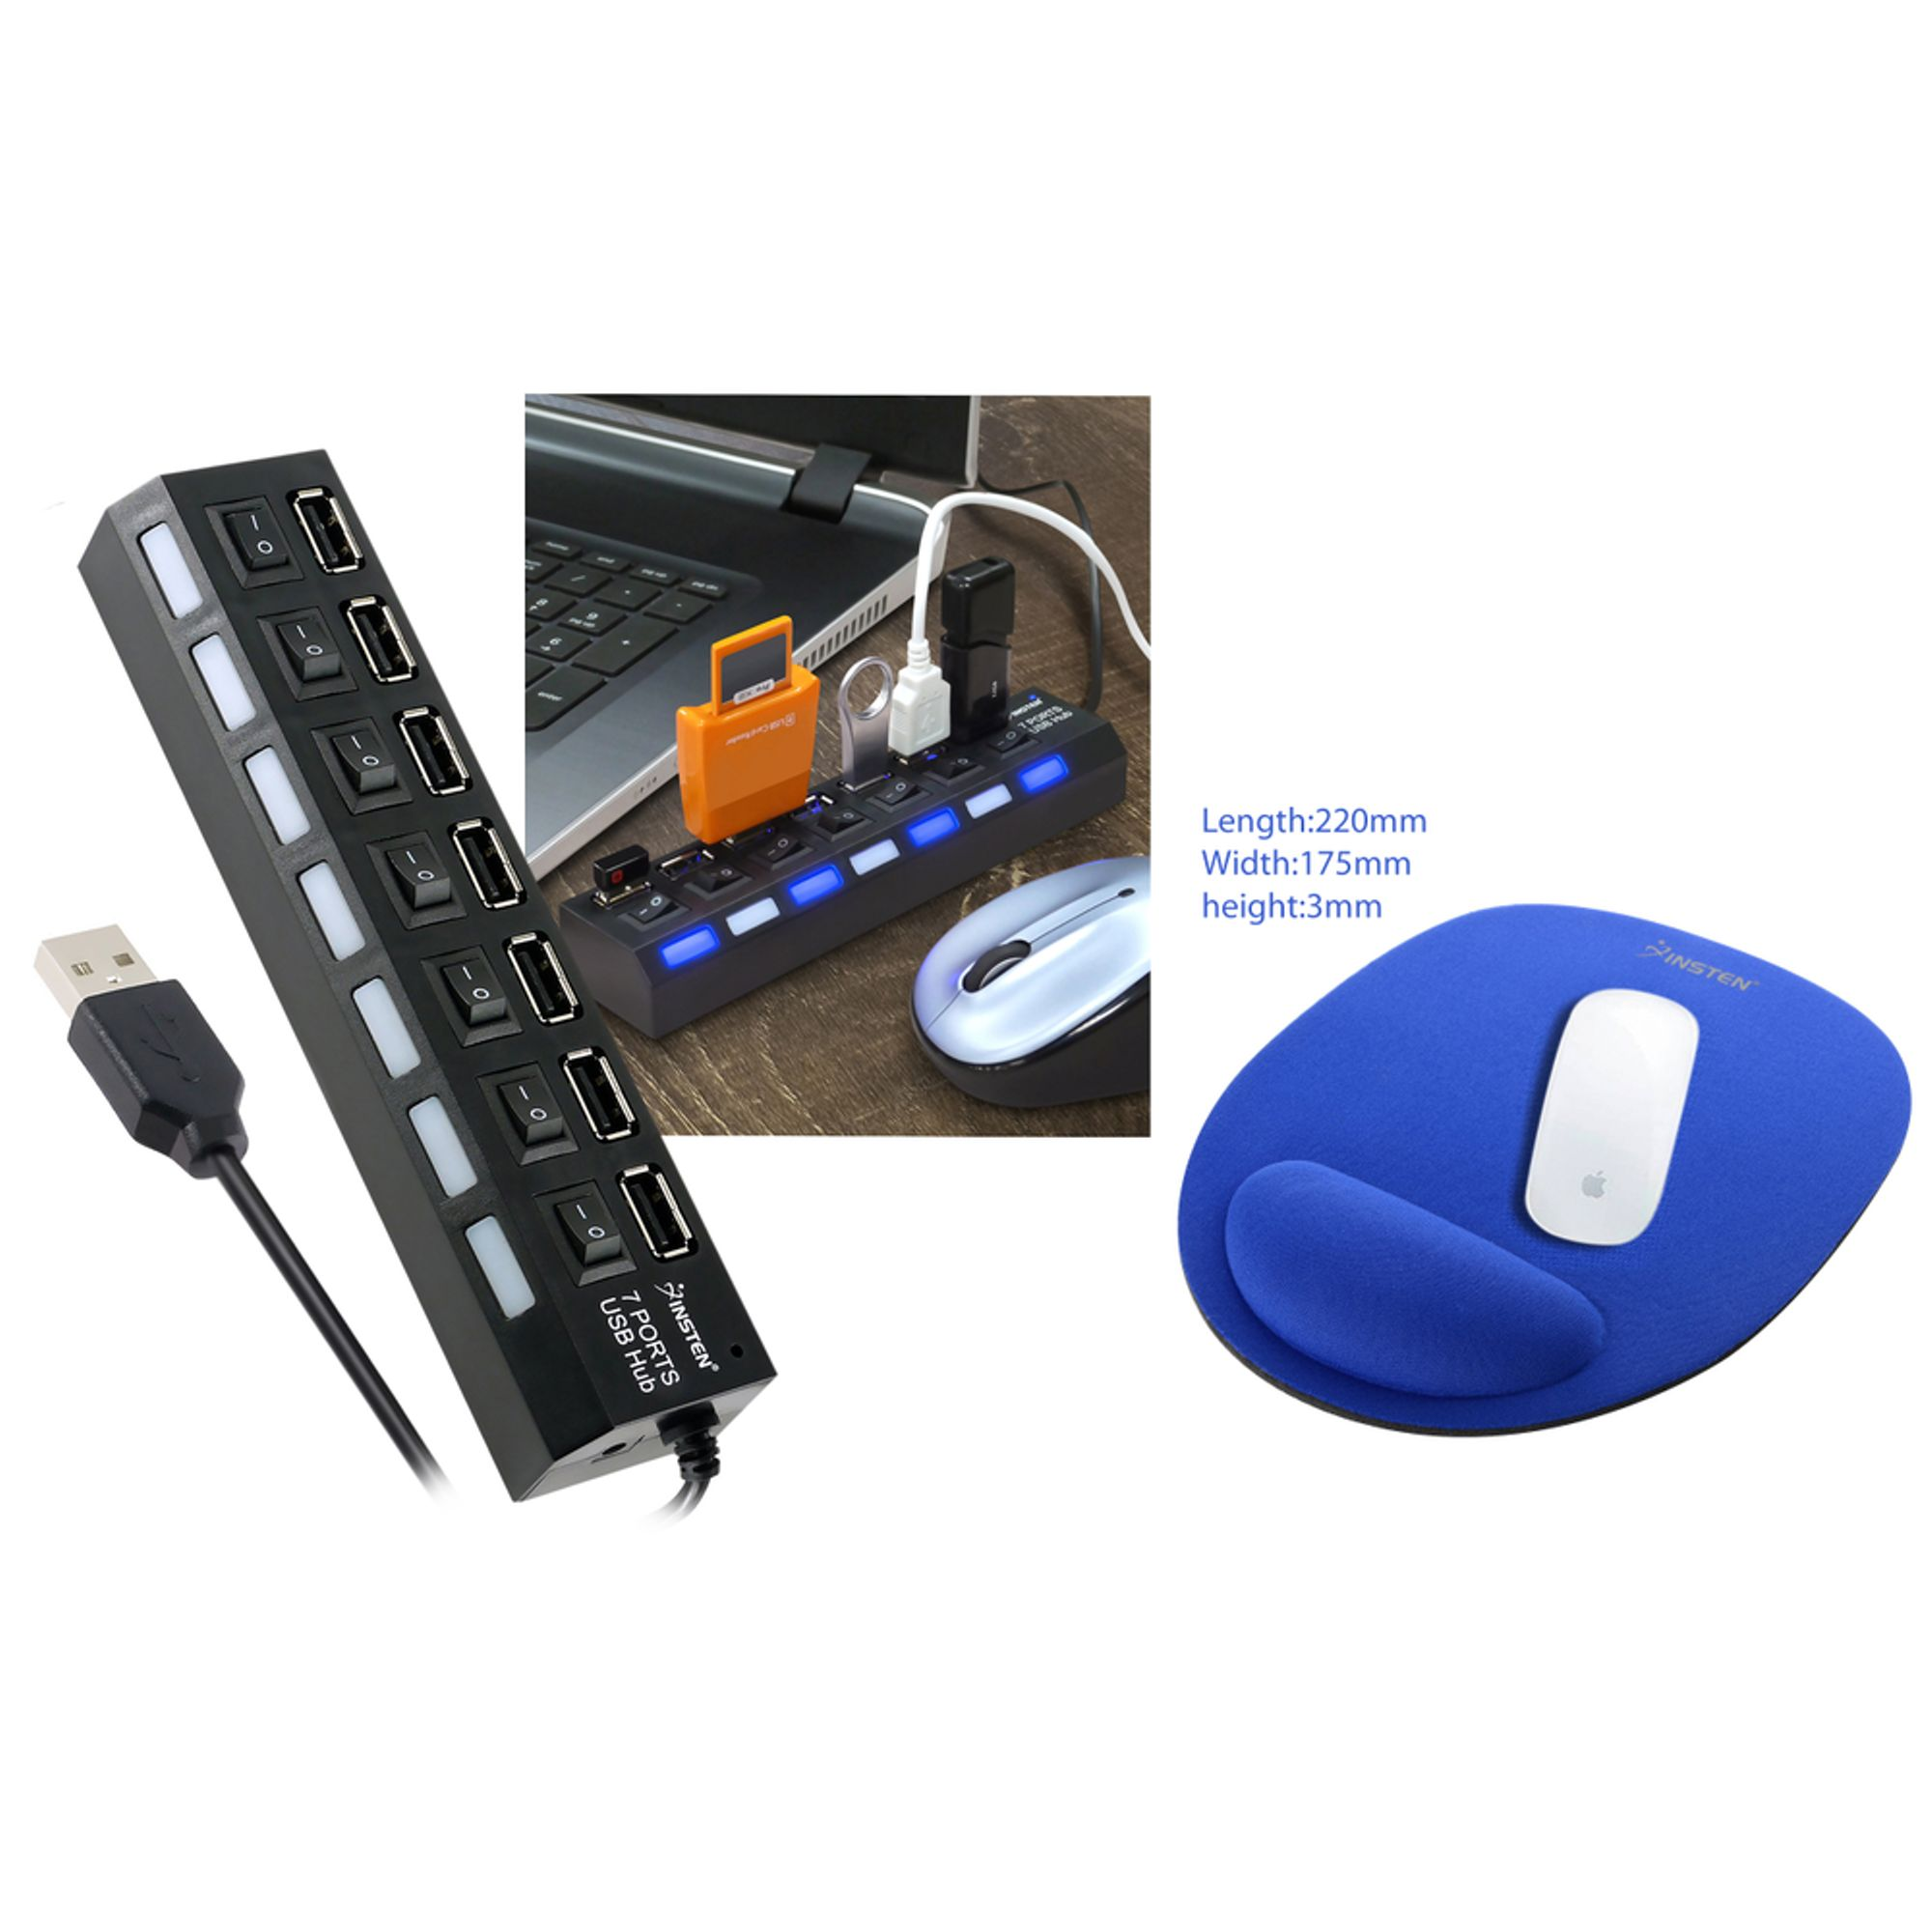 Insten 7-Port USB Hub with ON / OFF Switch Adapter with LED Light + Insten Wrist Rest Support Comfort Mouse Pad For Optical Mouse / Trackball Mouse, Blue